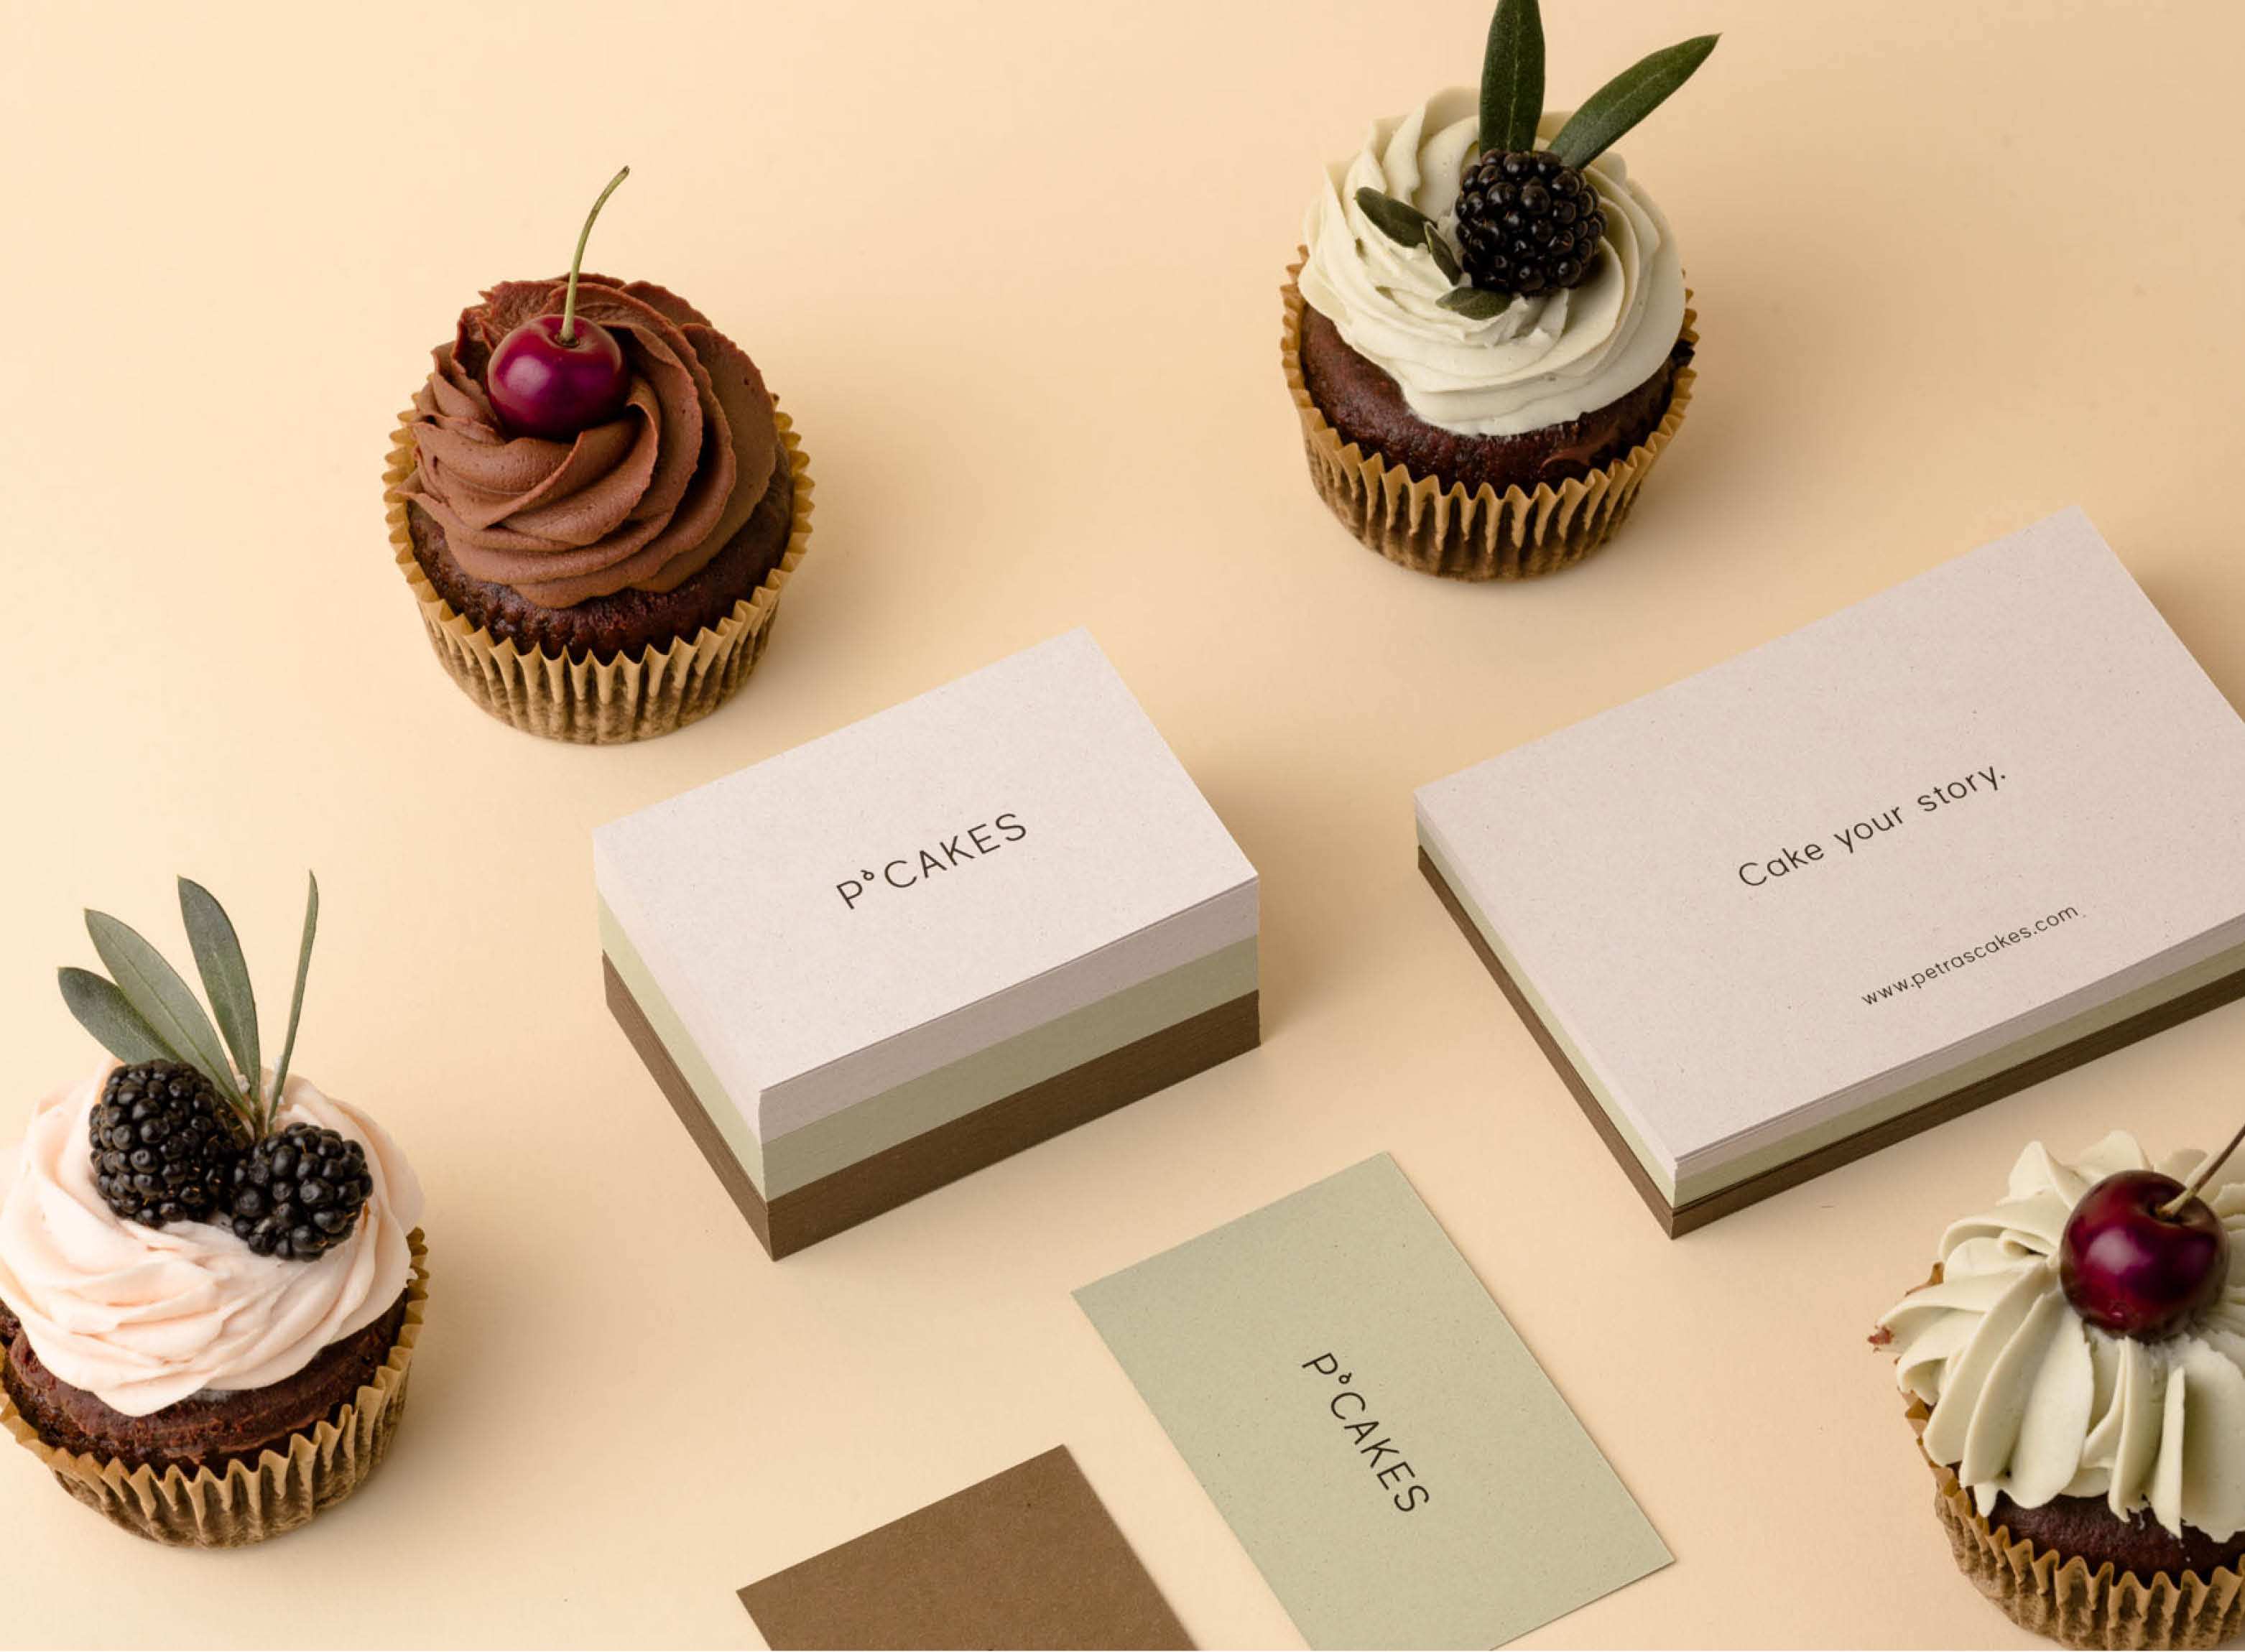 P'cakes business card